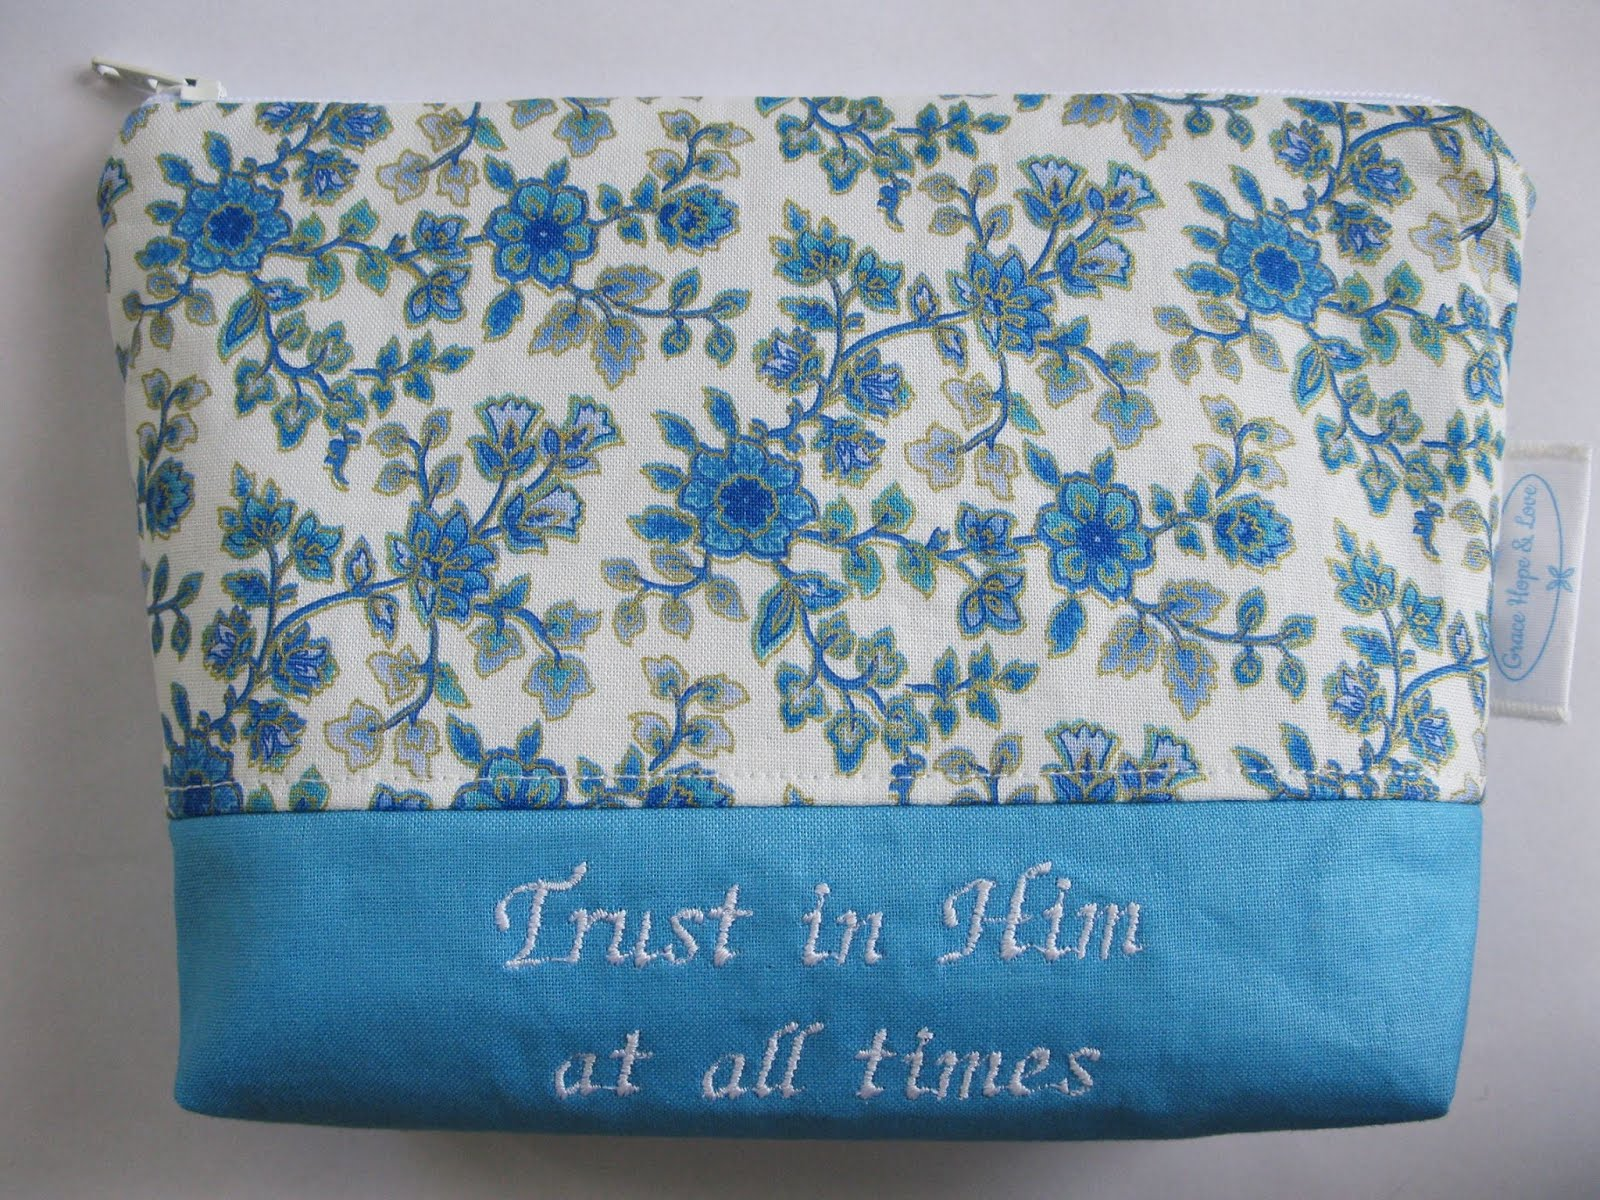 Petersham Bible Book U0026 Tract Depot Blue Floral Toiletries Bag